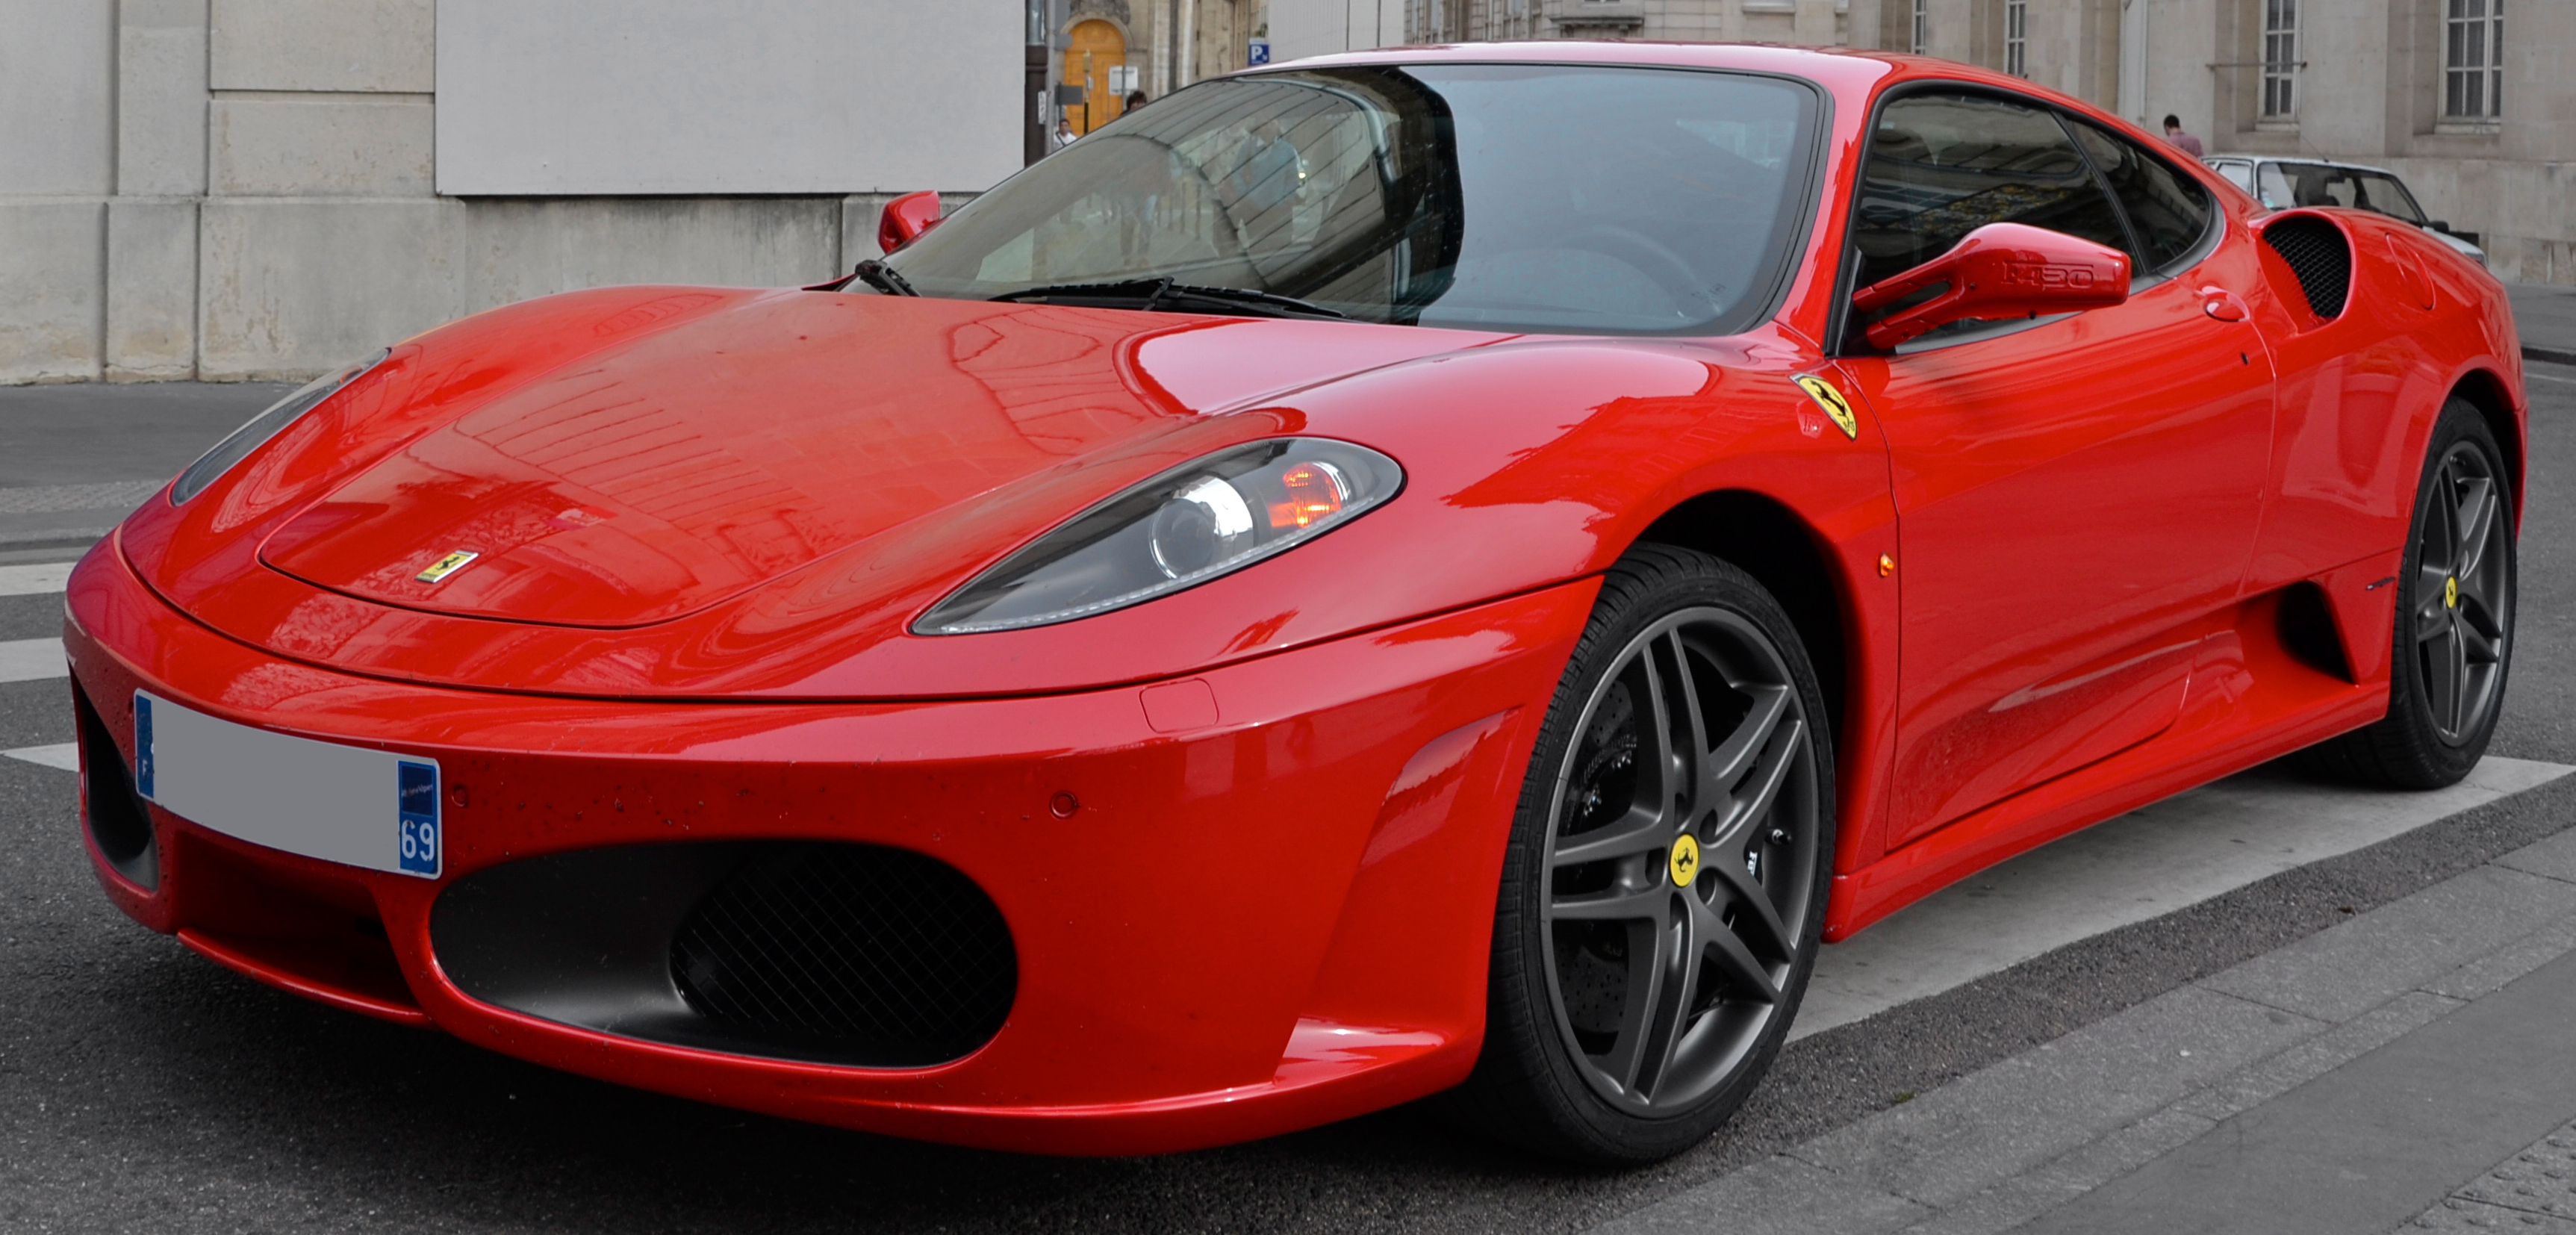 Hire a Ferrai F430 at PB Supercars